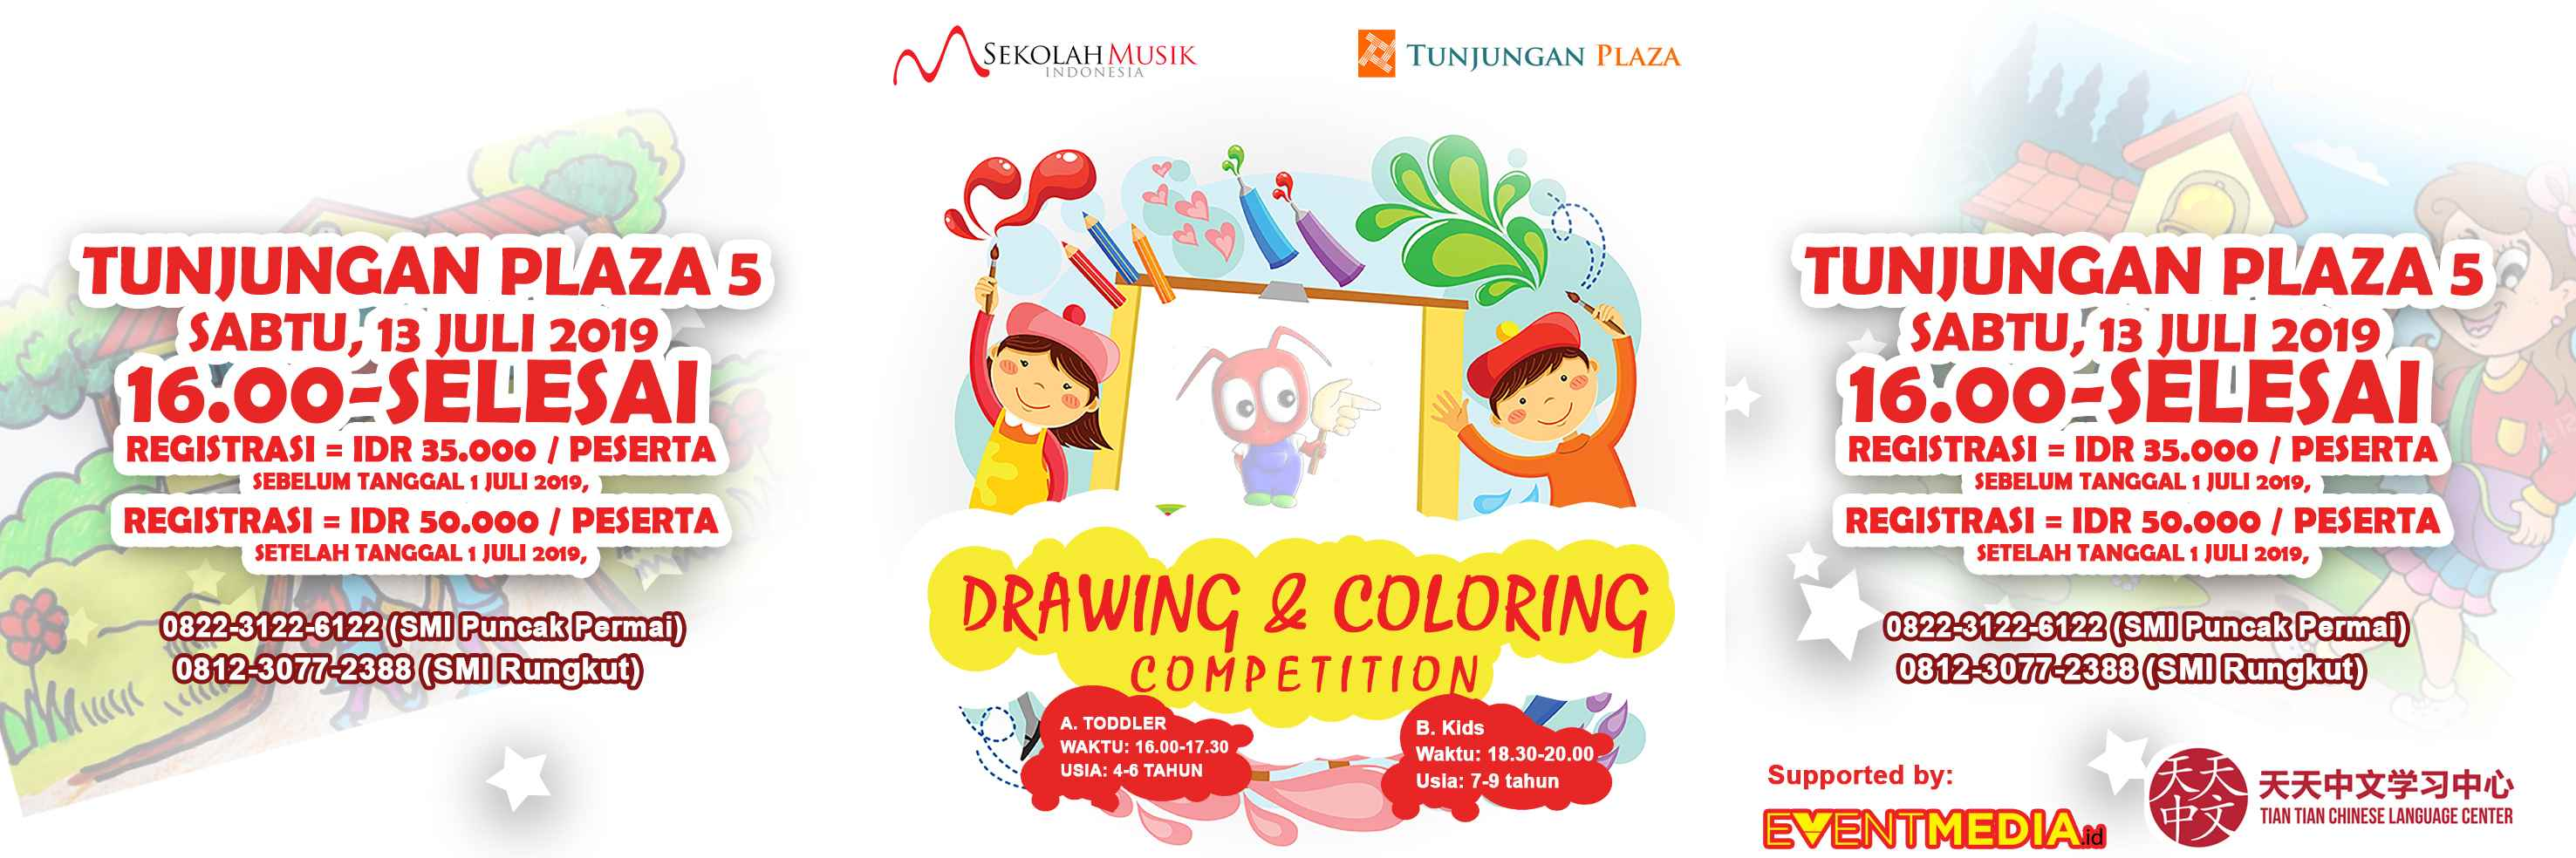 lomba SMI Drawing & Coloring Competition